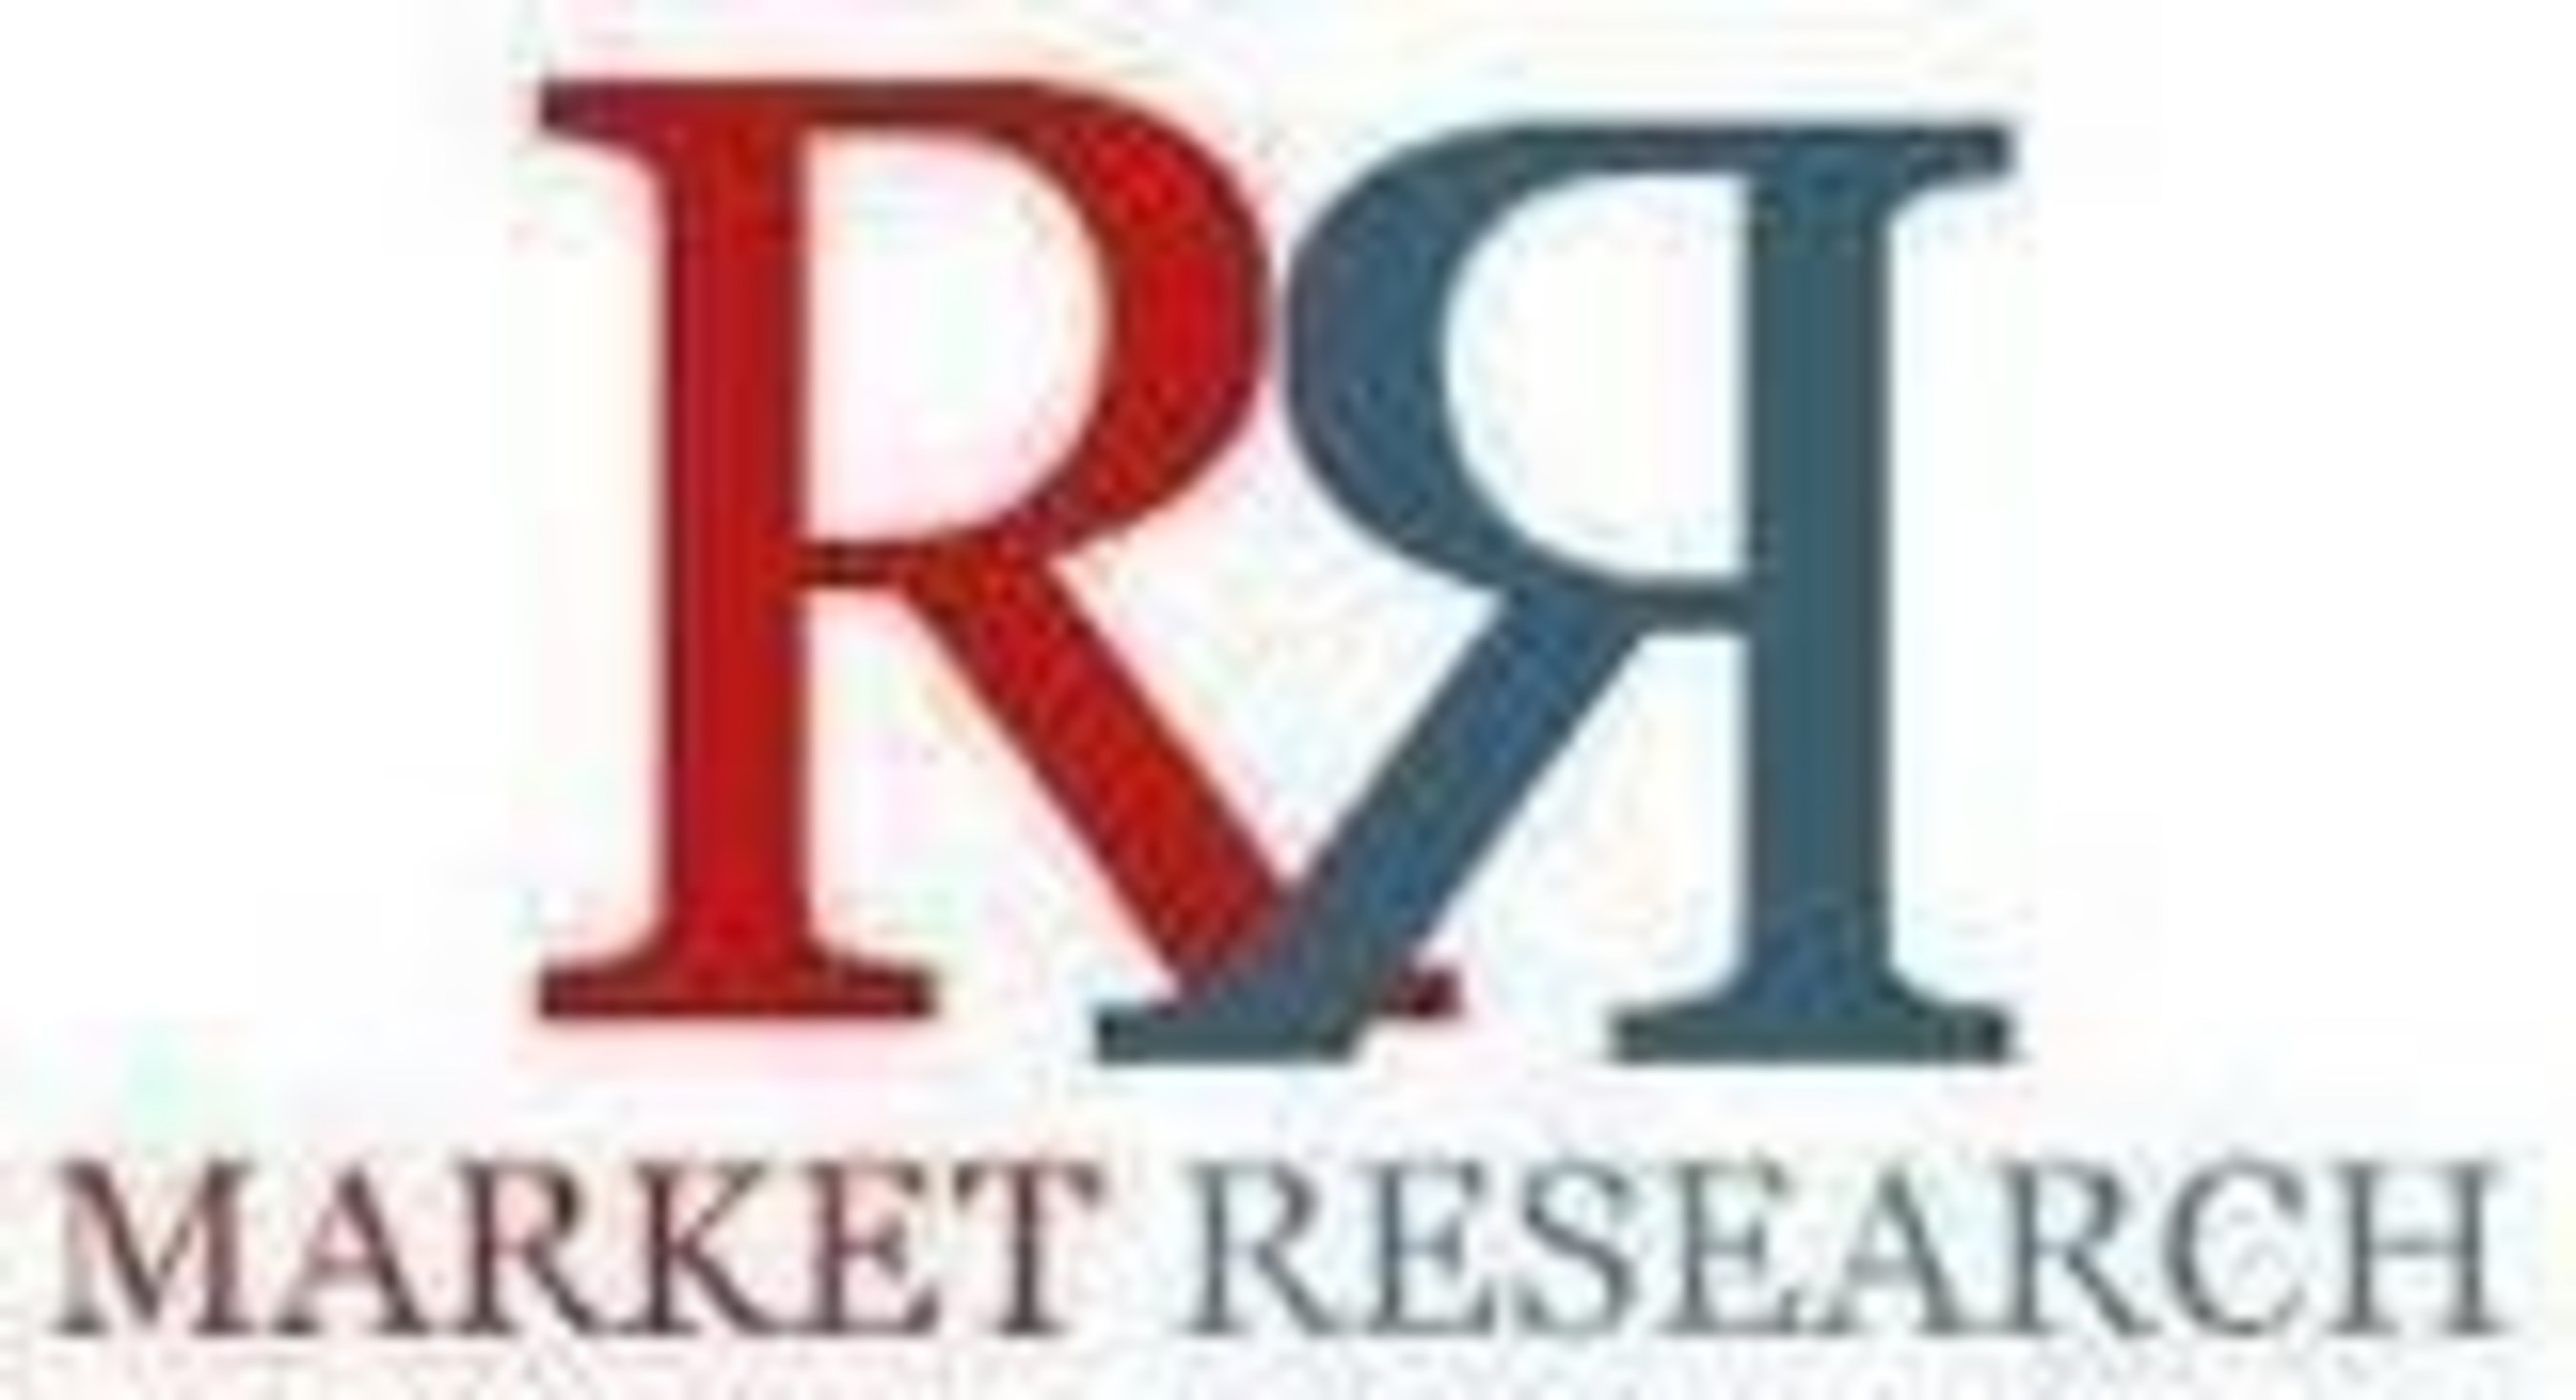 Solid State (Smart) Transformer Market to Hit 24.72% CAGR to 2020 Led by Europe Region